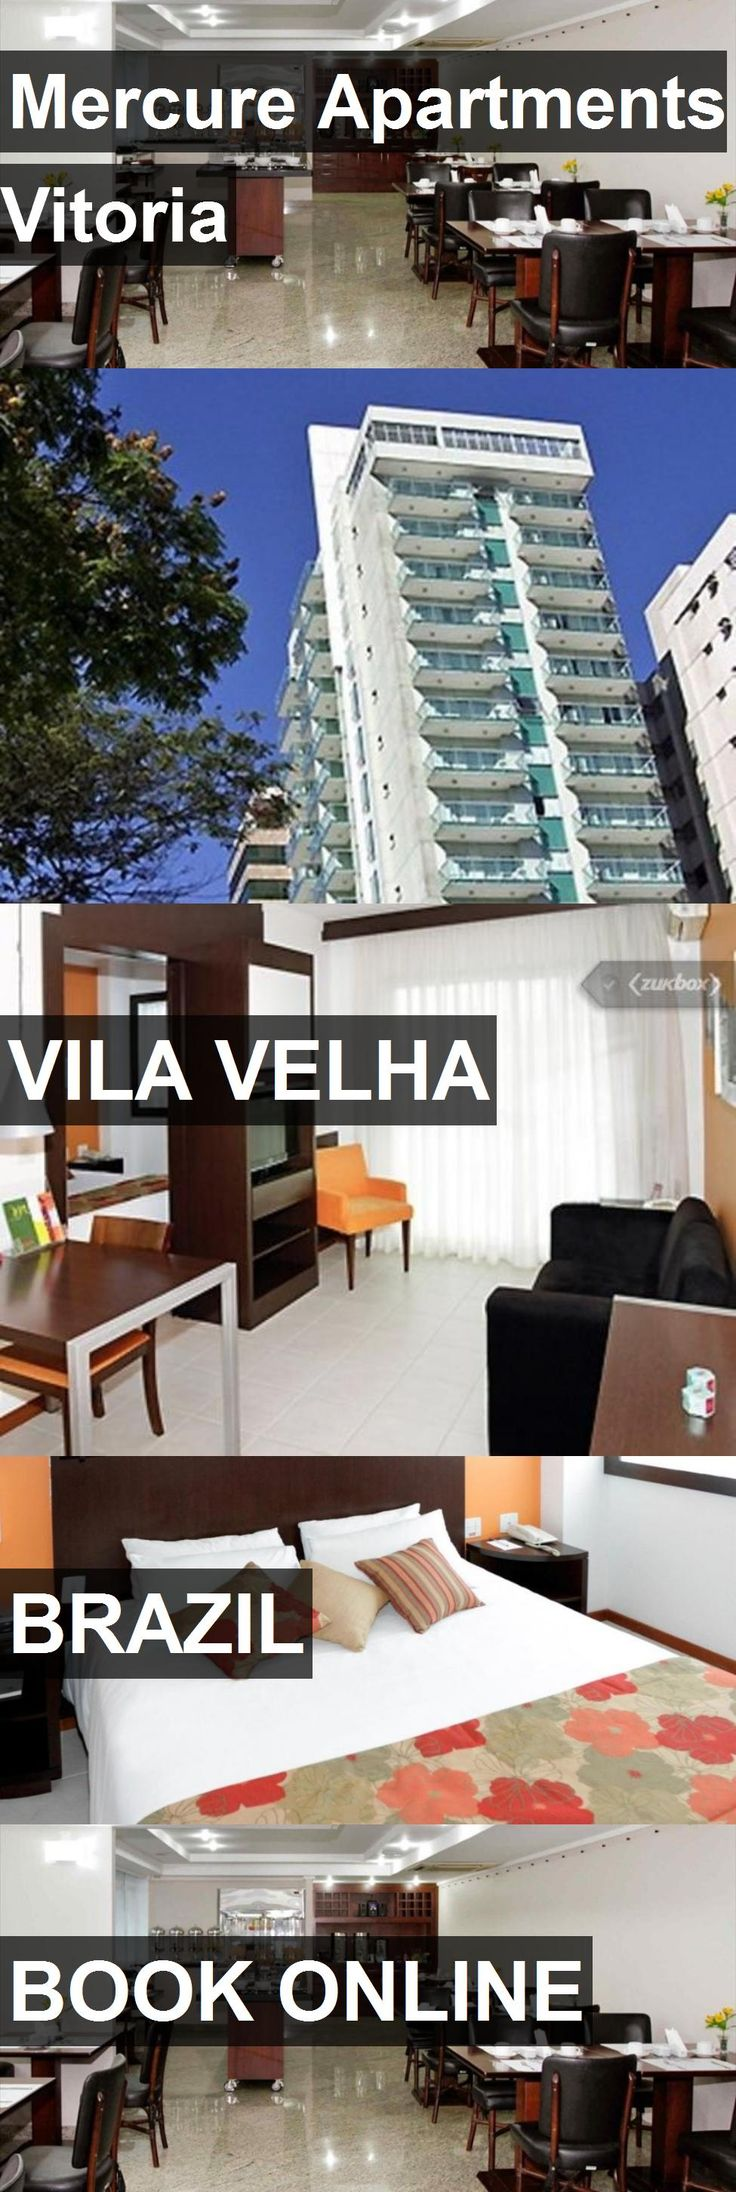 Mercure Apartments Vitoria in Vila Velha, Brazil. For more information, photos, reviews and best prices please follow the link. #Brazil #VilaVelha #travel #vacation #apartment